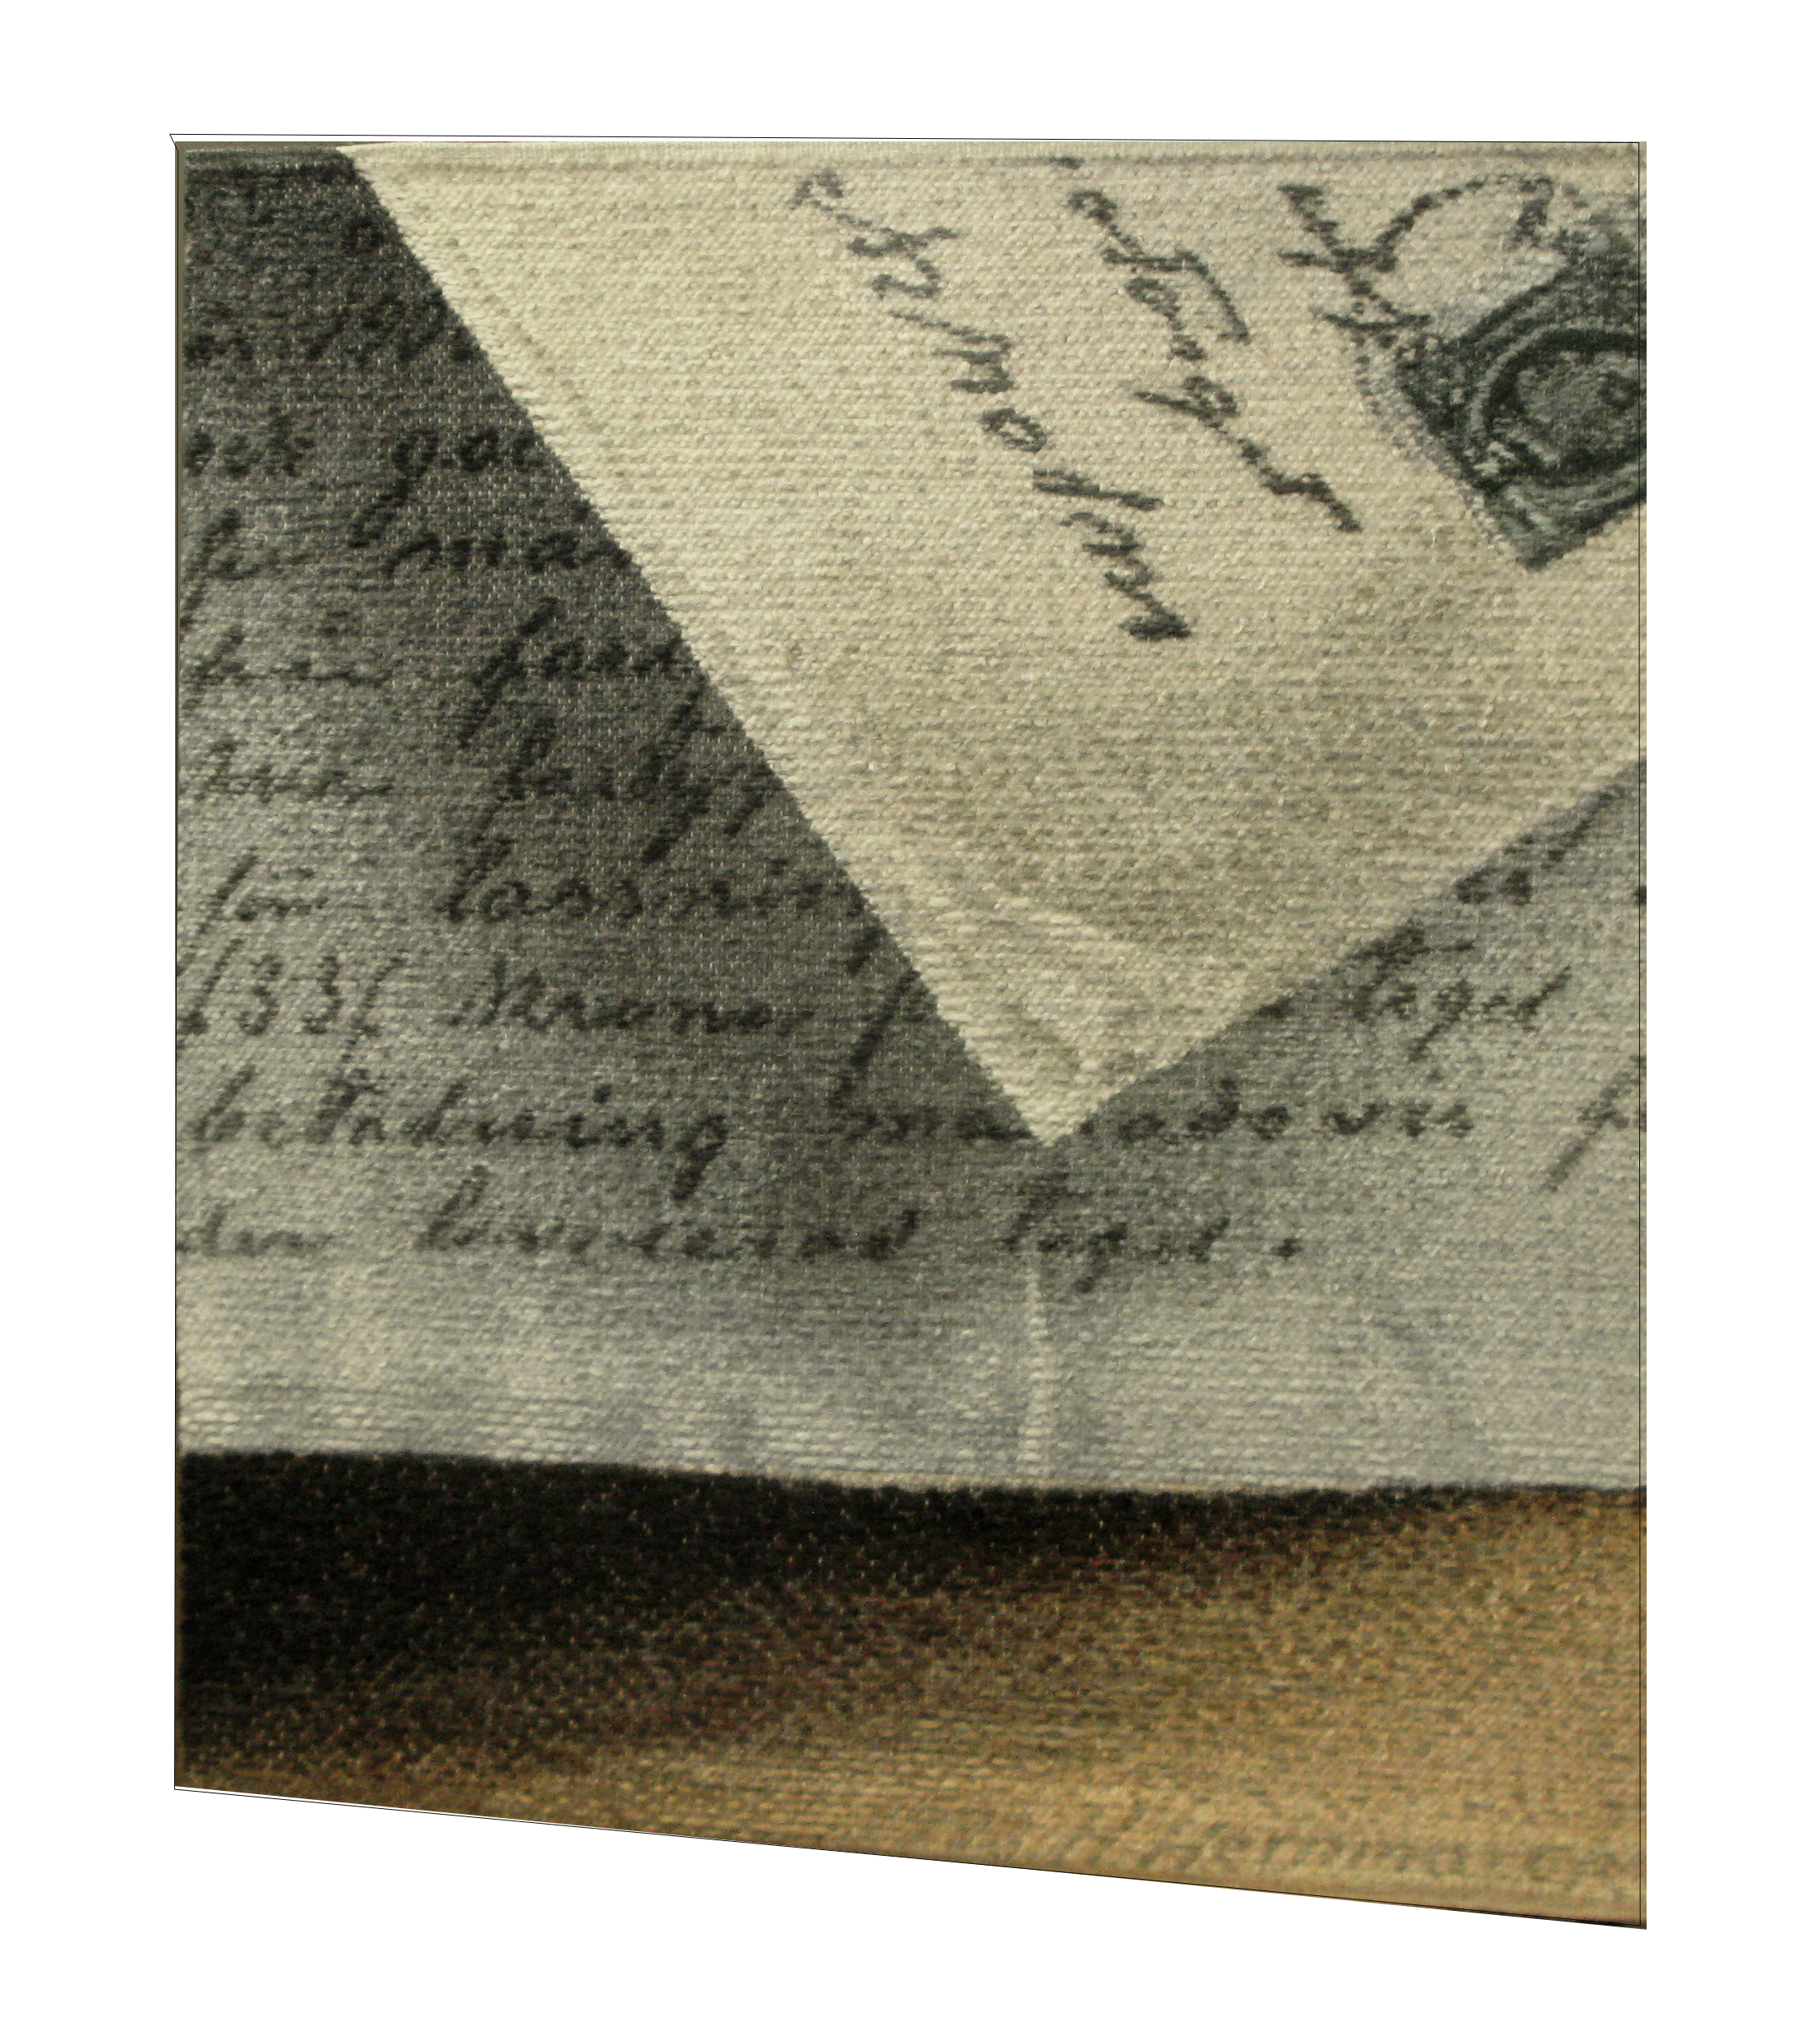 Hernmarck has a unique ability to fool the viewer's eye, as with this example of spatial illusion.